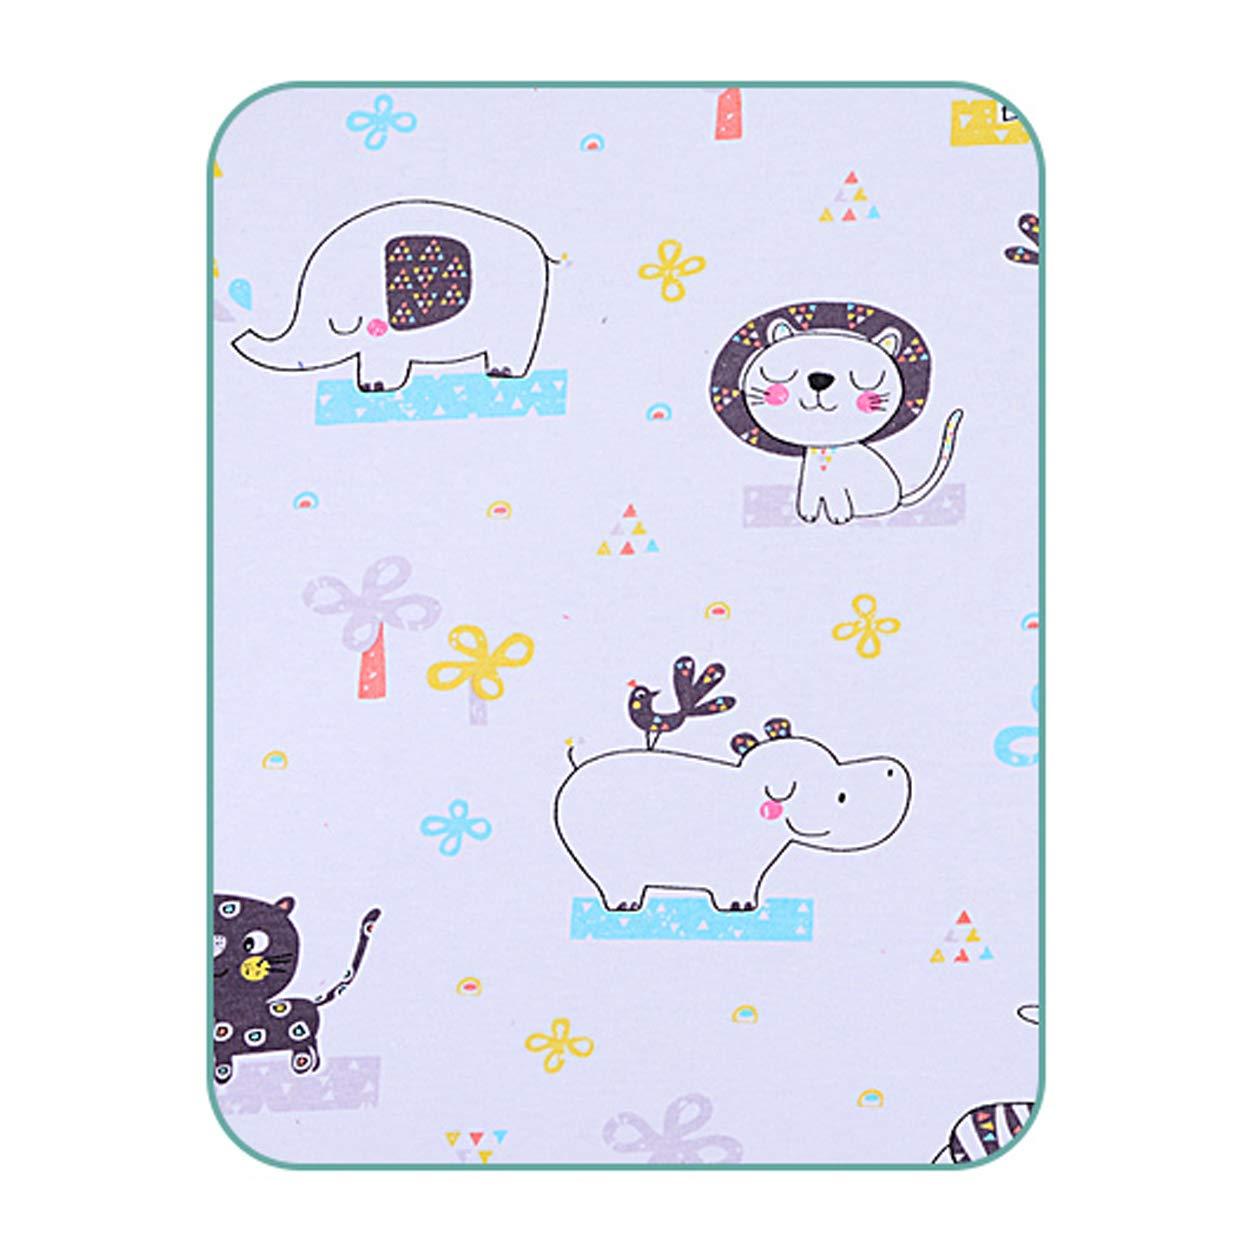 Ggsrtesxs Quality Bed Pad Adult Women's Infant Patient Old Student Absorbent Premium Cotton Breathable Non-Slip Leak-Proof Quilted Waterproof Reusable Washable,B,75x100cm by Ggsrtesxs